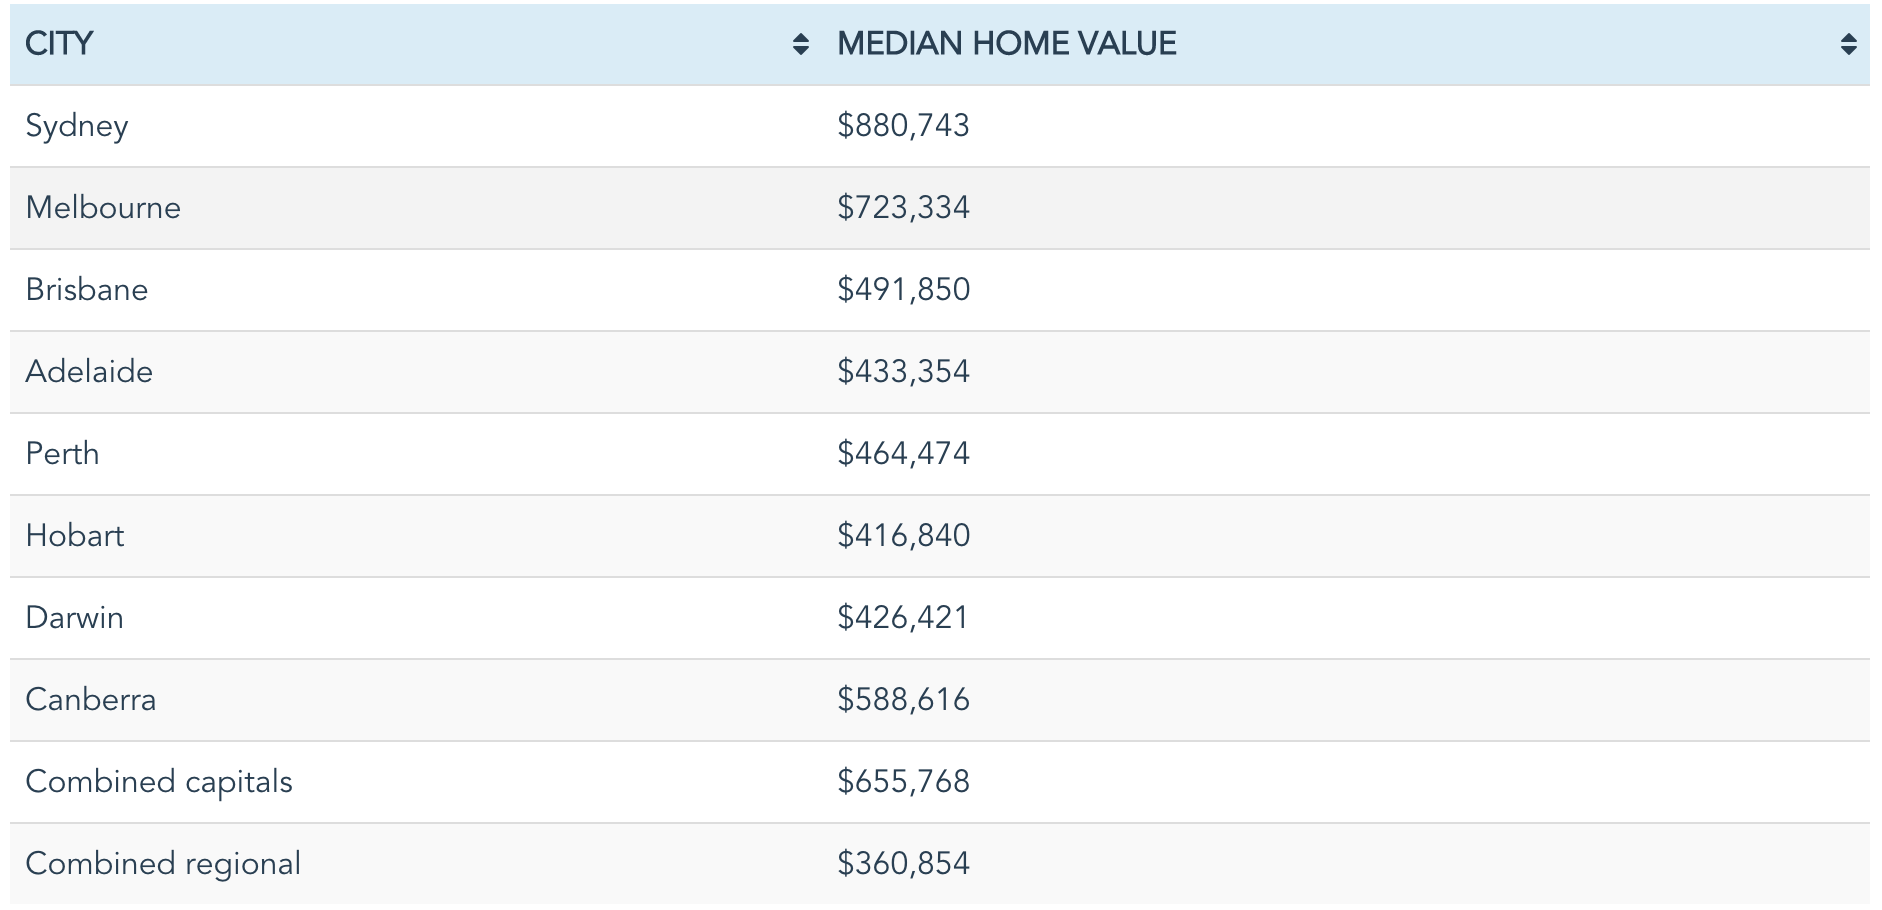 median property prices in each state change month-to-month, according to February 2018 CoreLogic data